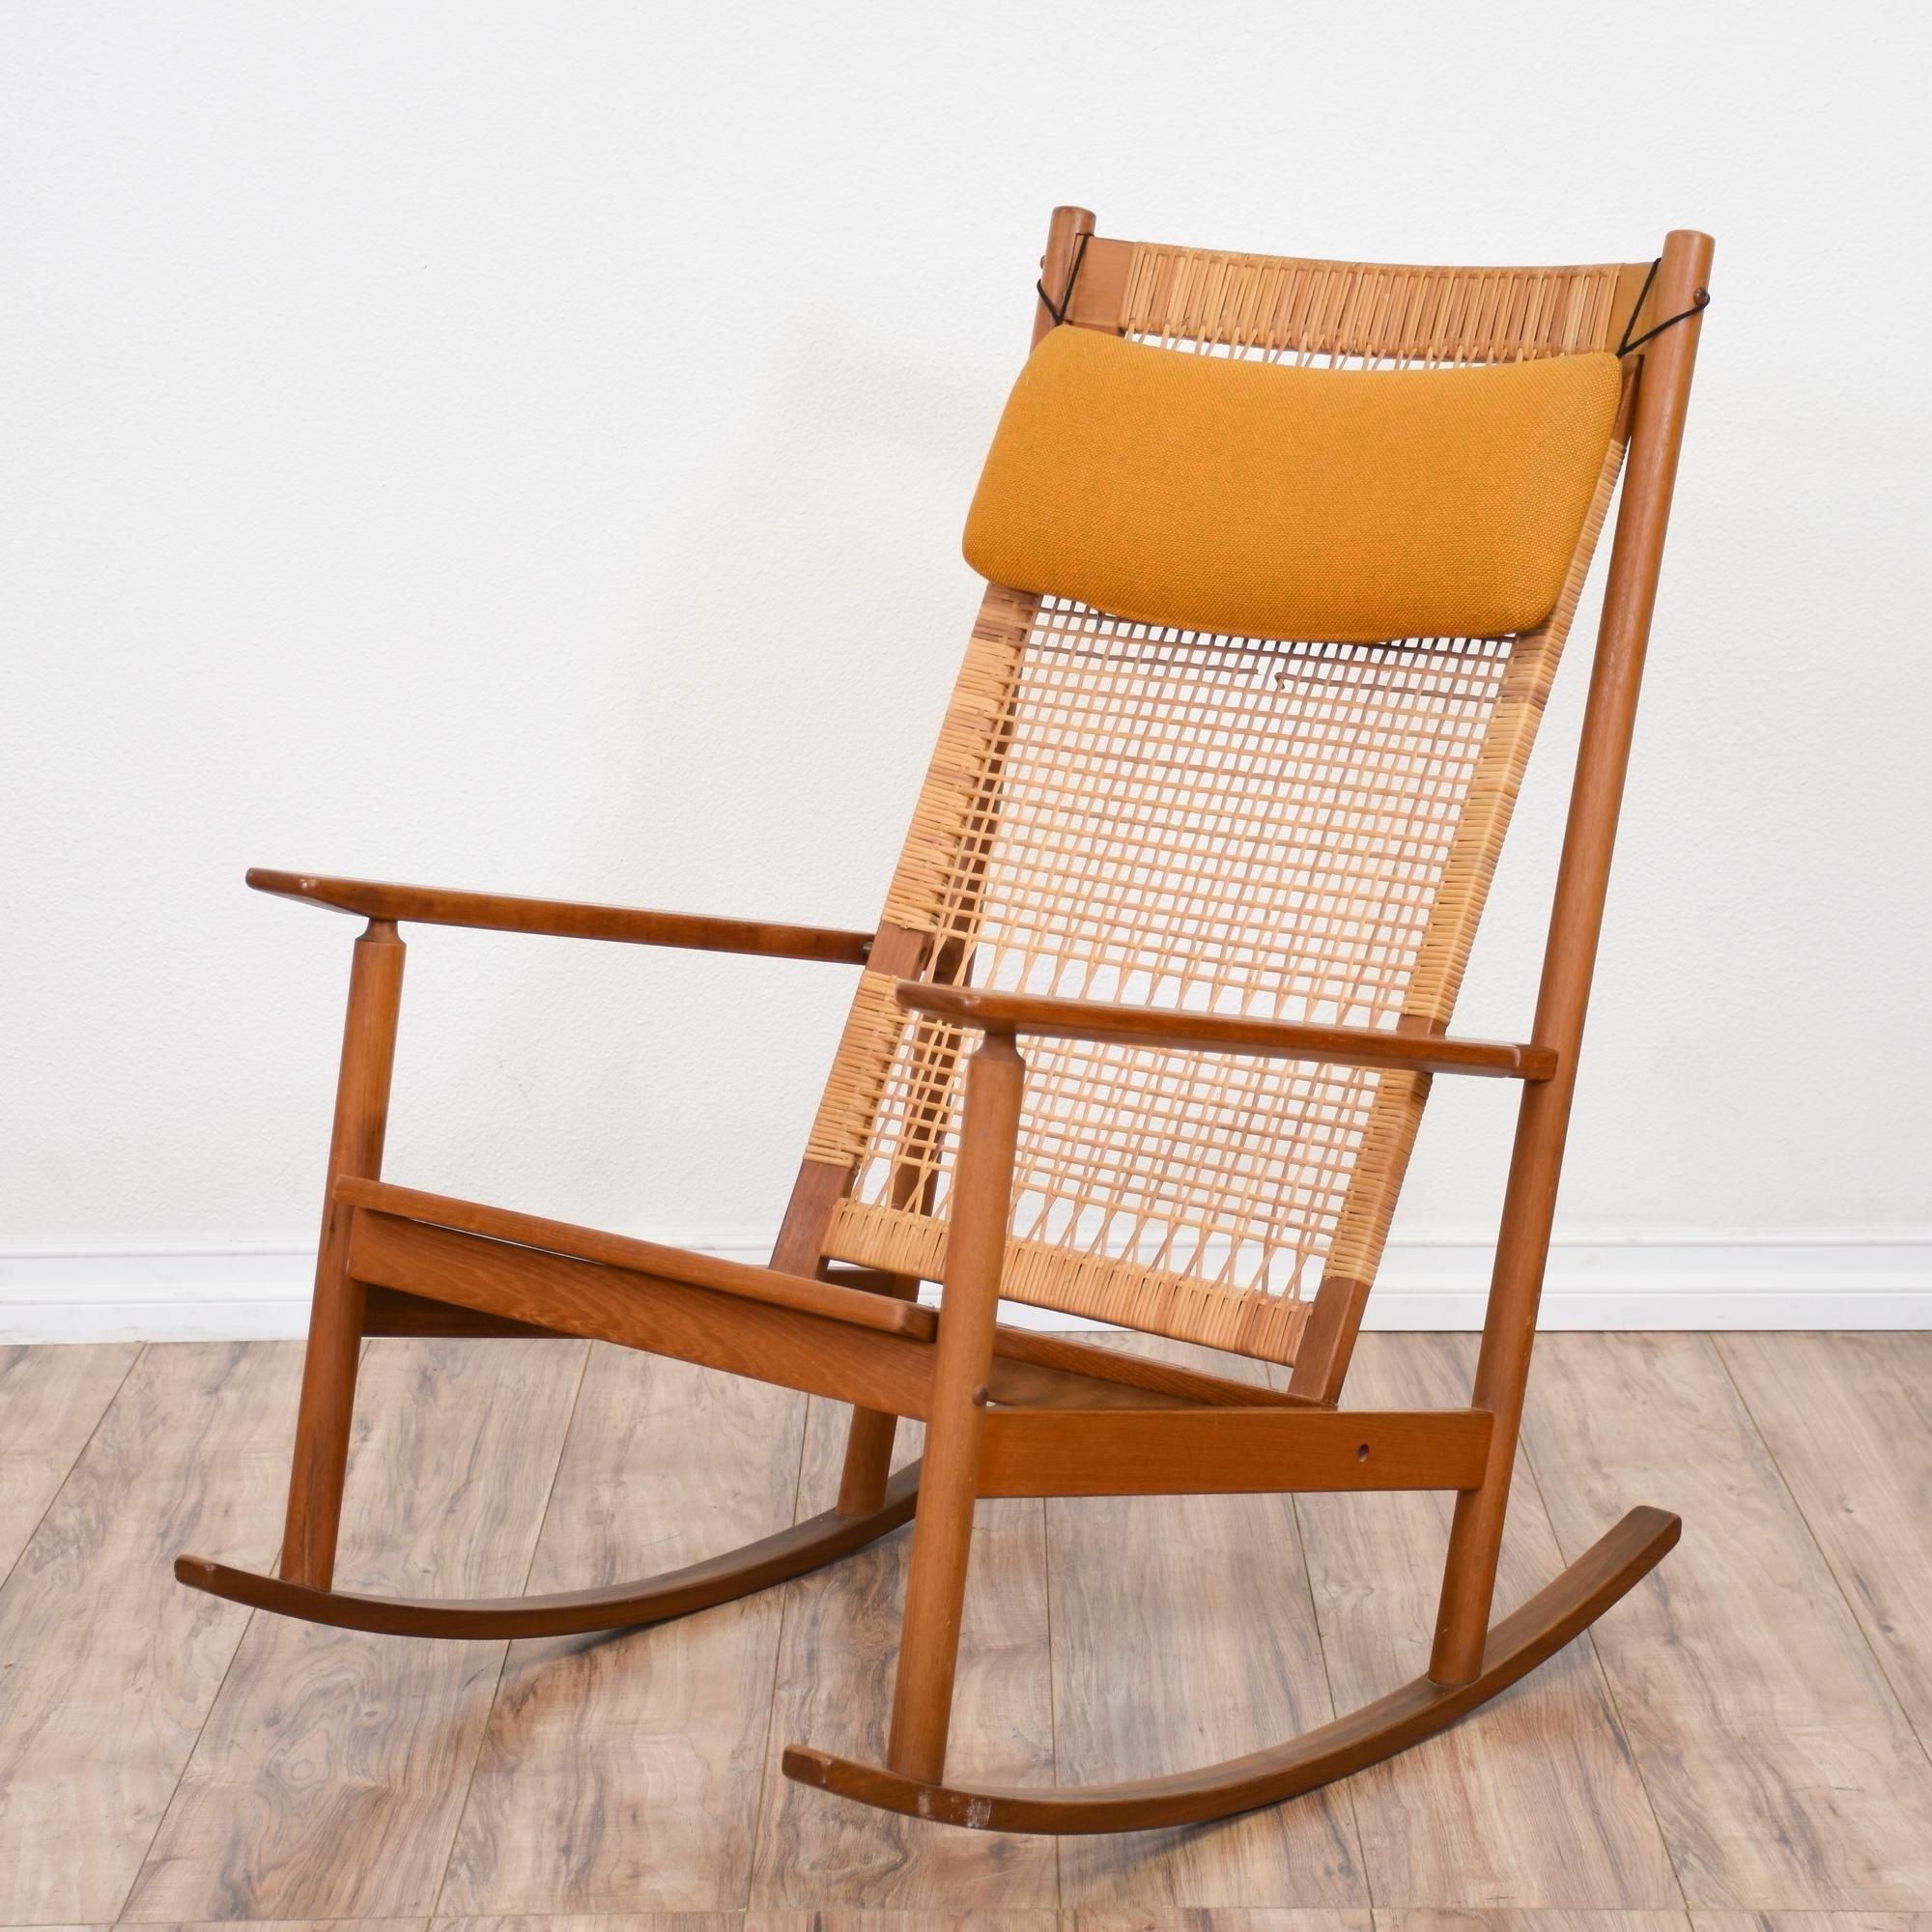 Fashionable This Mid Century Modern Rocking Chair Is Featured In A Solid Wood With Regard To Yellow Outdoor Rocking Chairs (View 2 of 15)